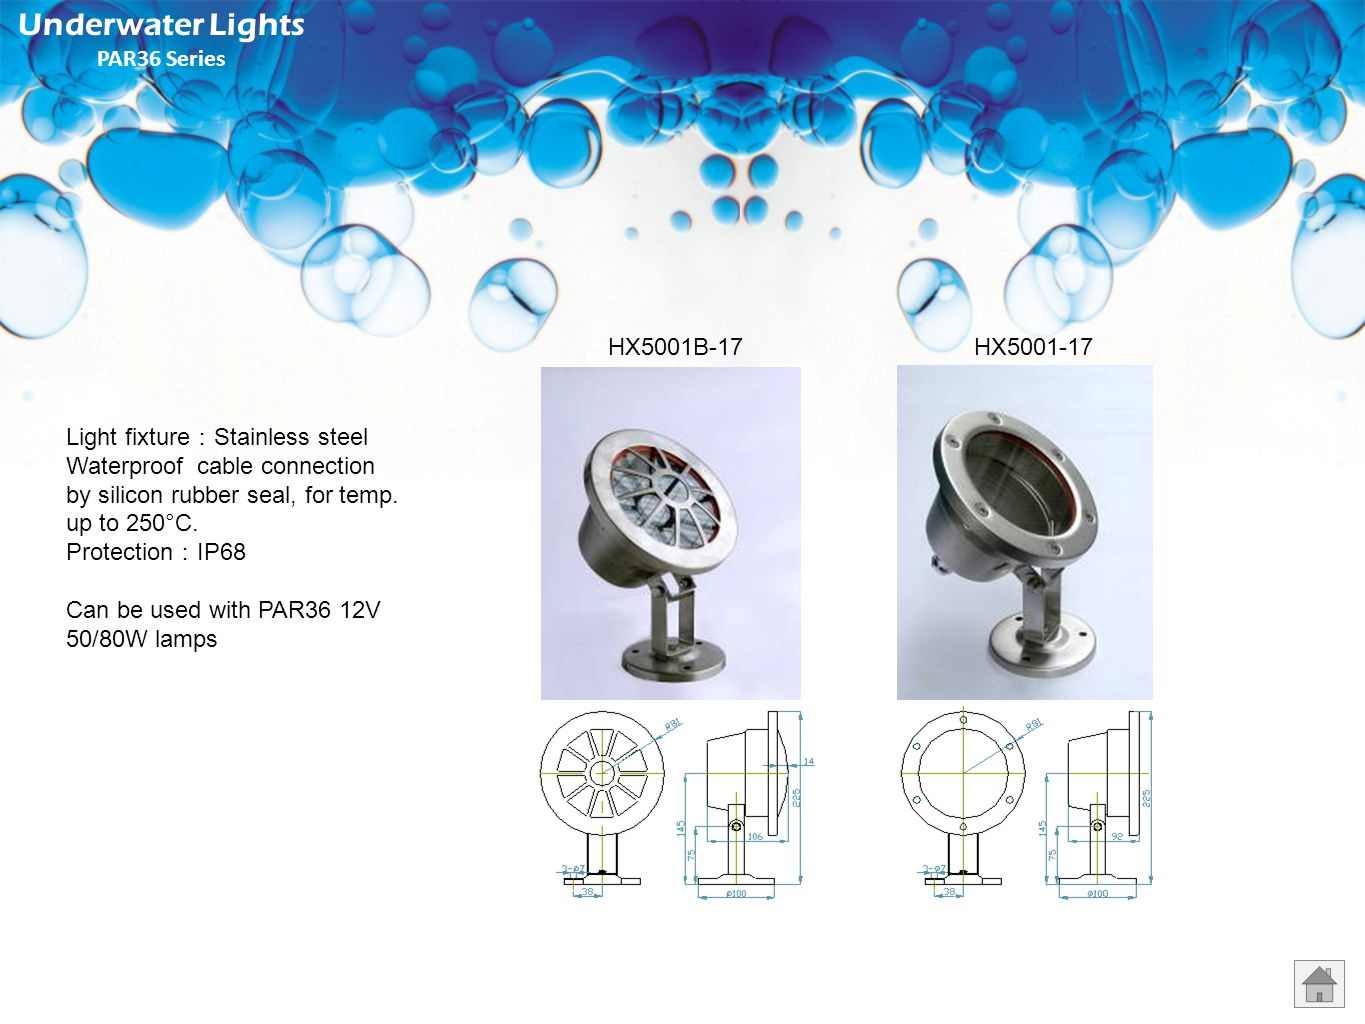 HXC-16 Underwater Lights MR16 Series Light fixture: Stainless steel cast Waterproof cable connection by silicon rubber seal, for temp. up to 250°C. Pr